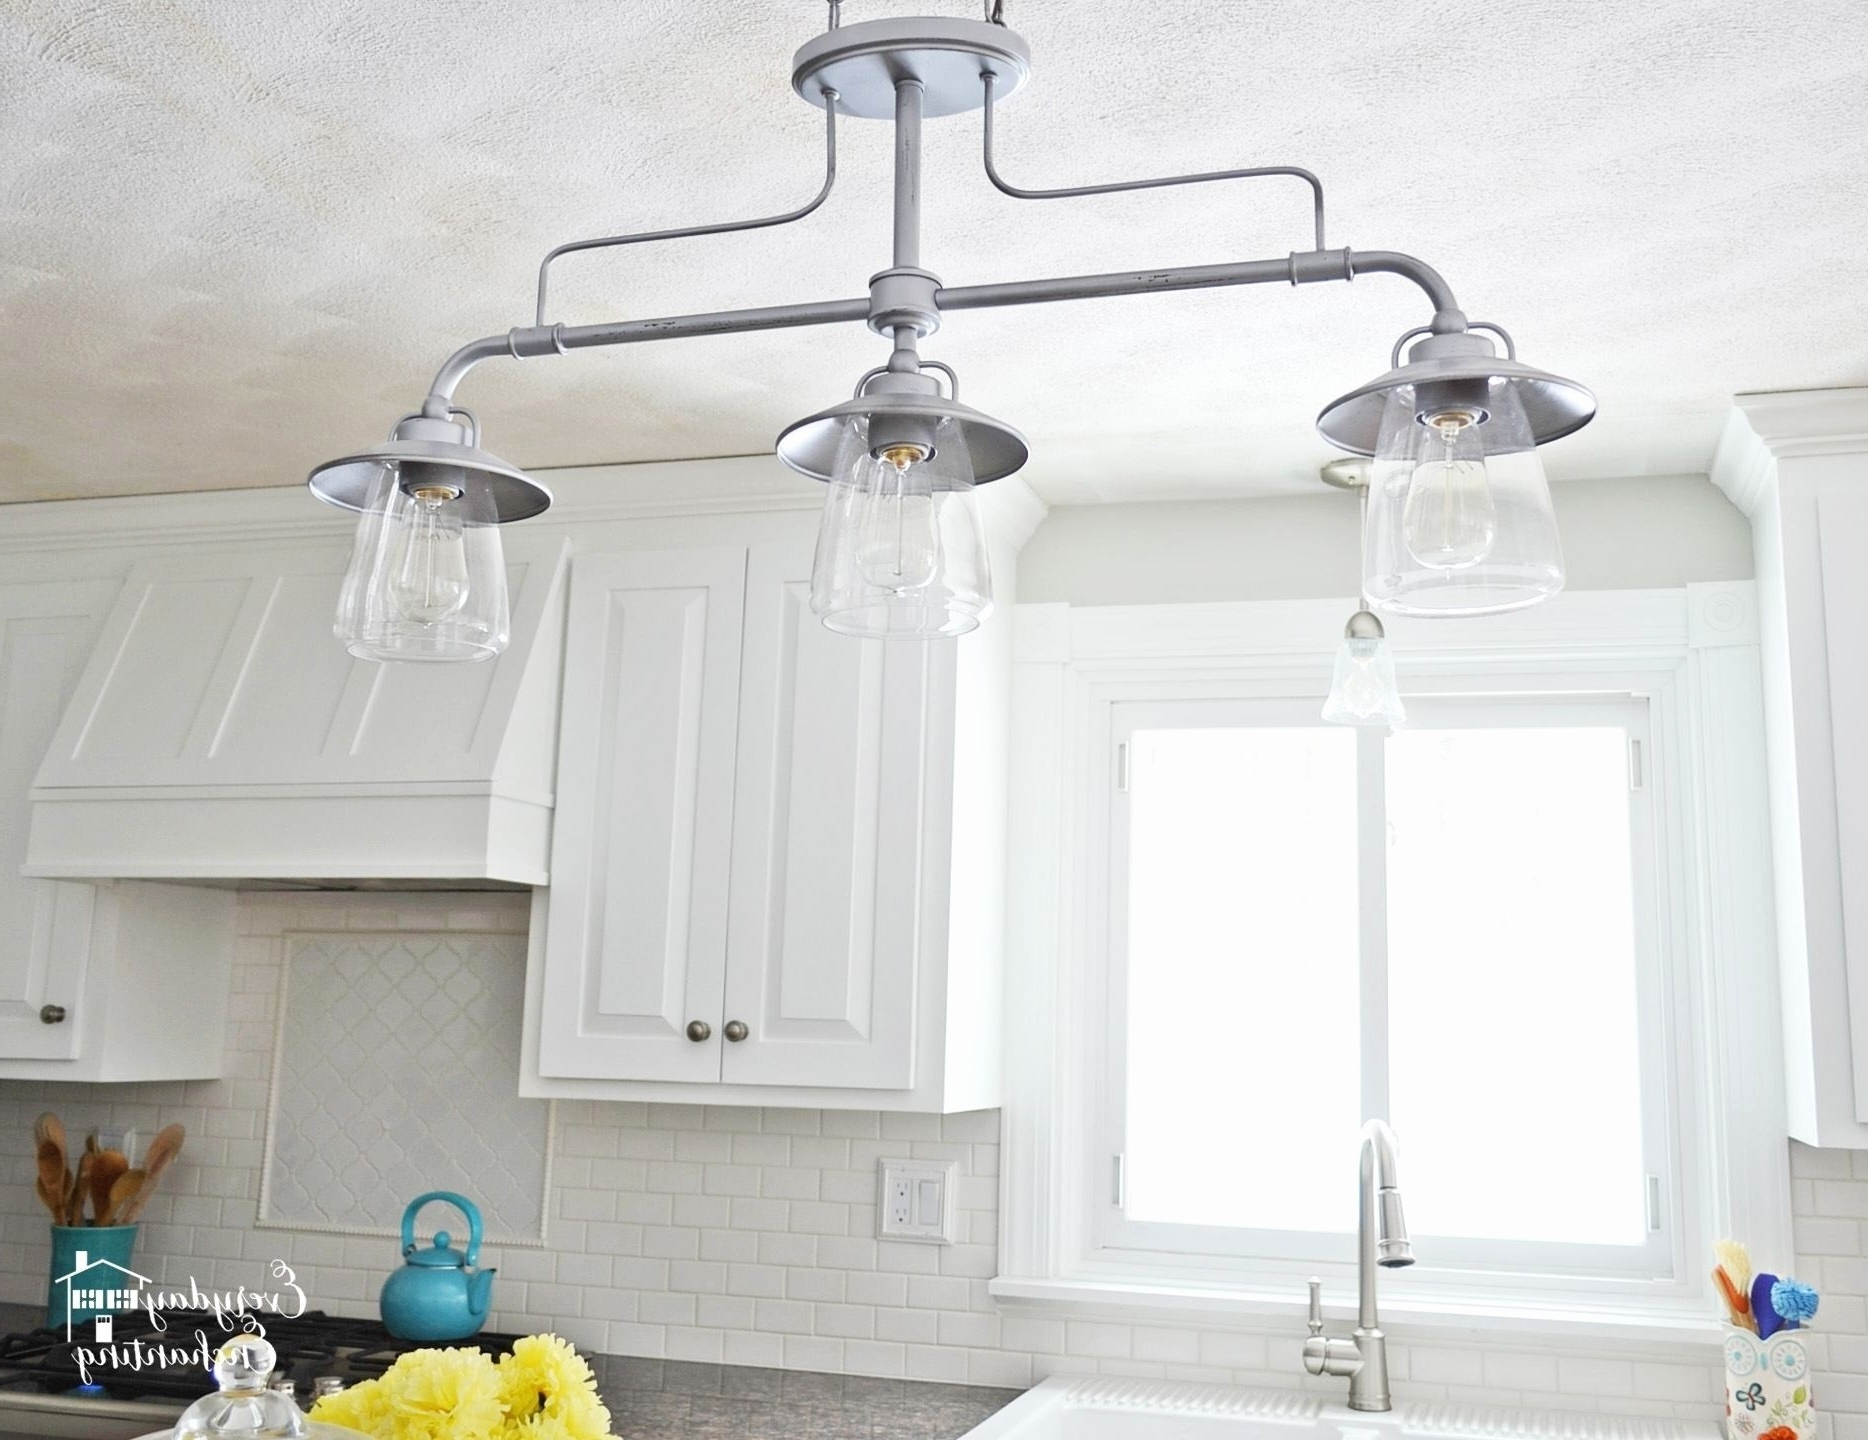 Outdoor Ceiling Fans With Light Globes With Preferred Walmart Outdoor Ceiling Fans With Lights Elegant Ceiling Fan Globes (View 18 of 20)